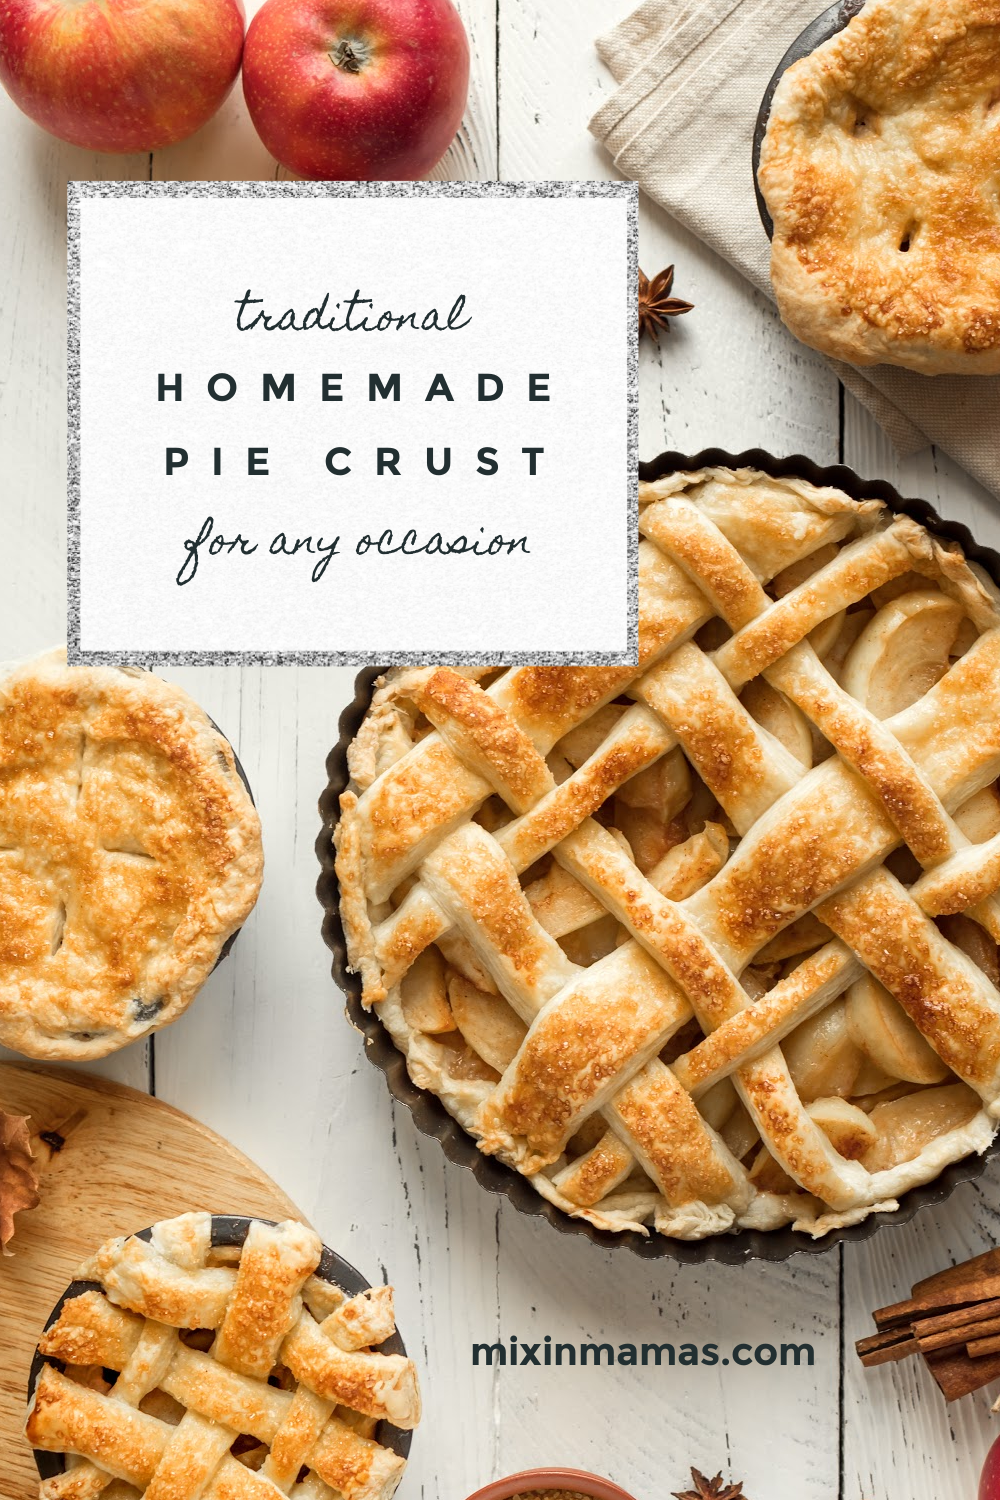 traditional homemade pie crust for any occasion